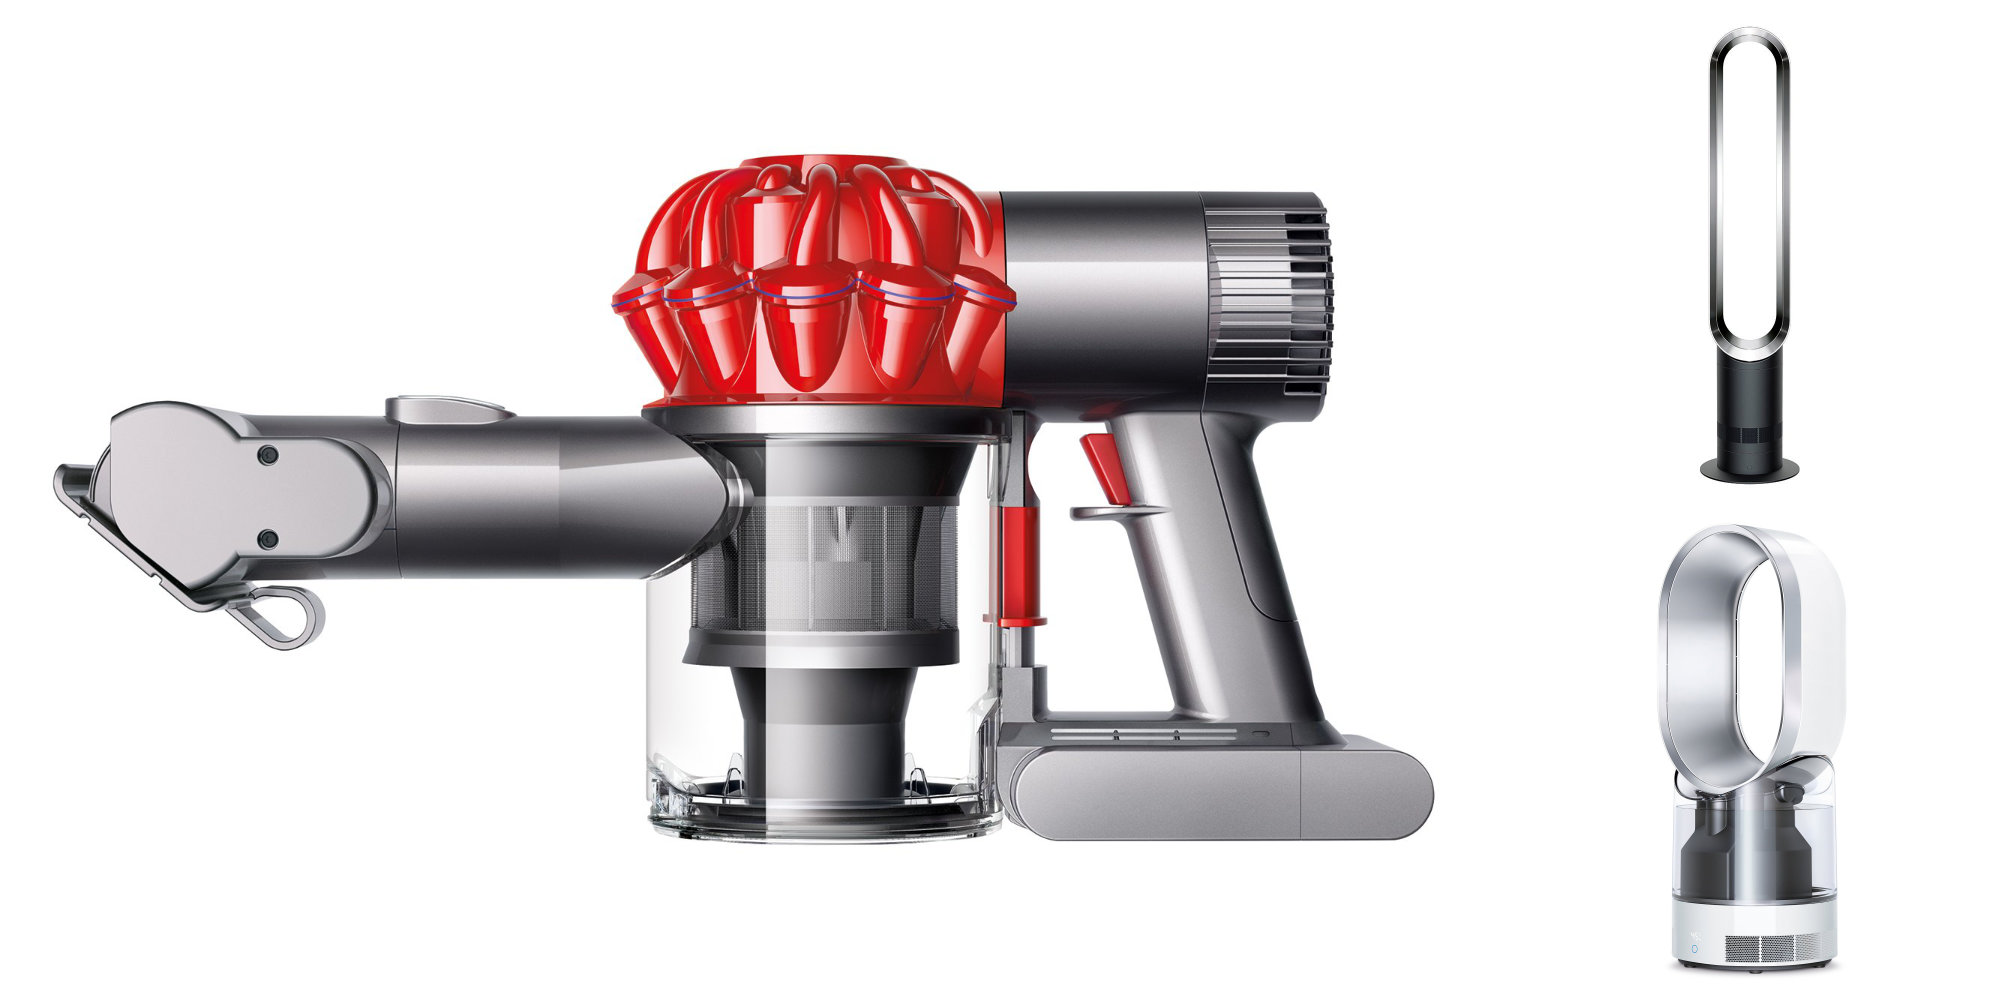 Select refurb Dyson products are 50% off: Car + Boat Vacuum $93.50, Tower Fan $136, more